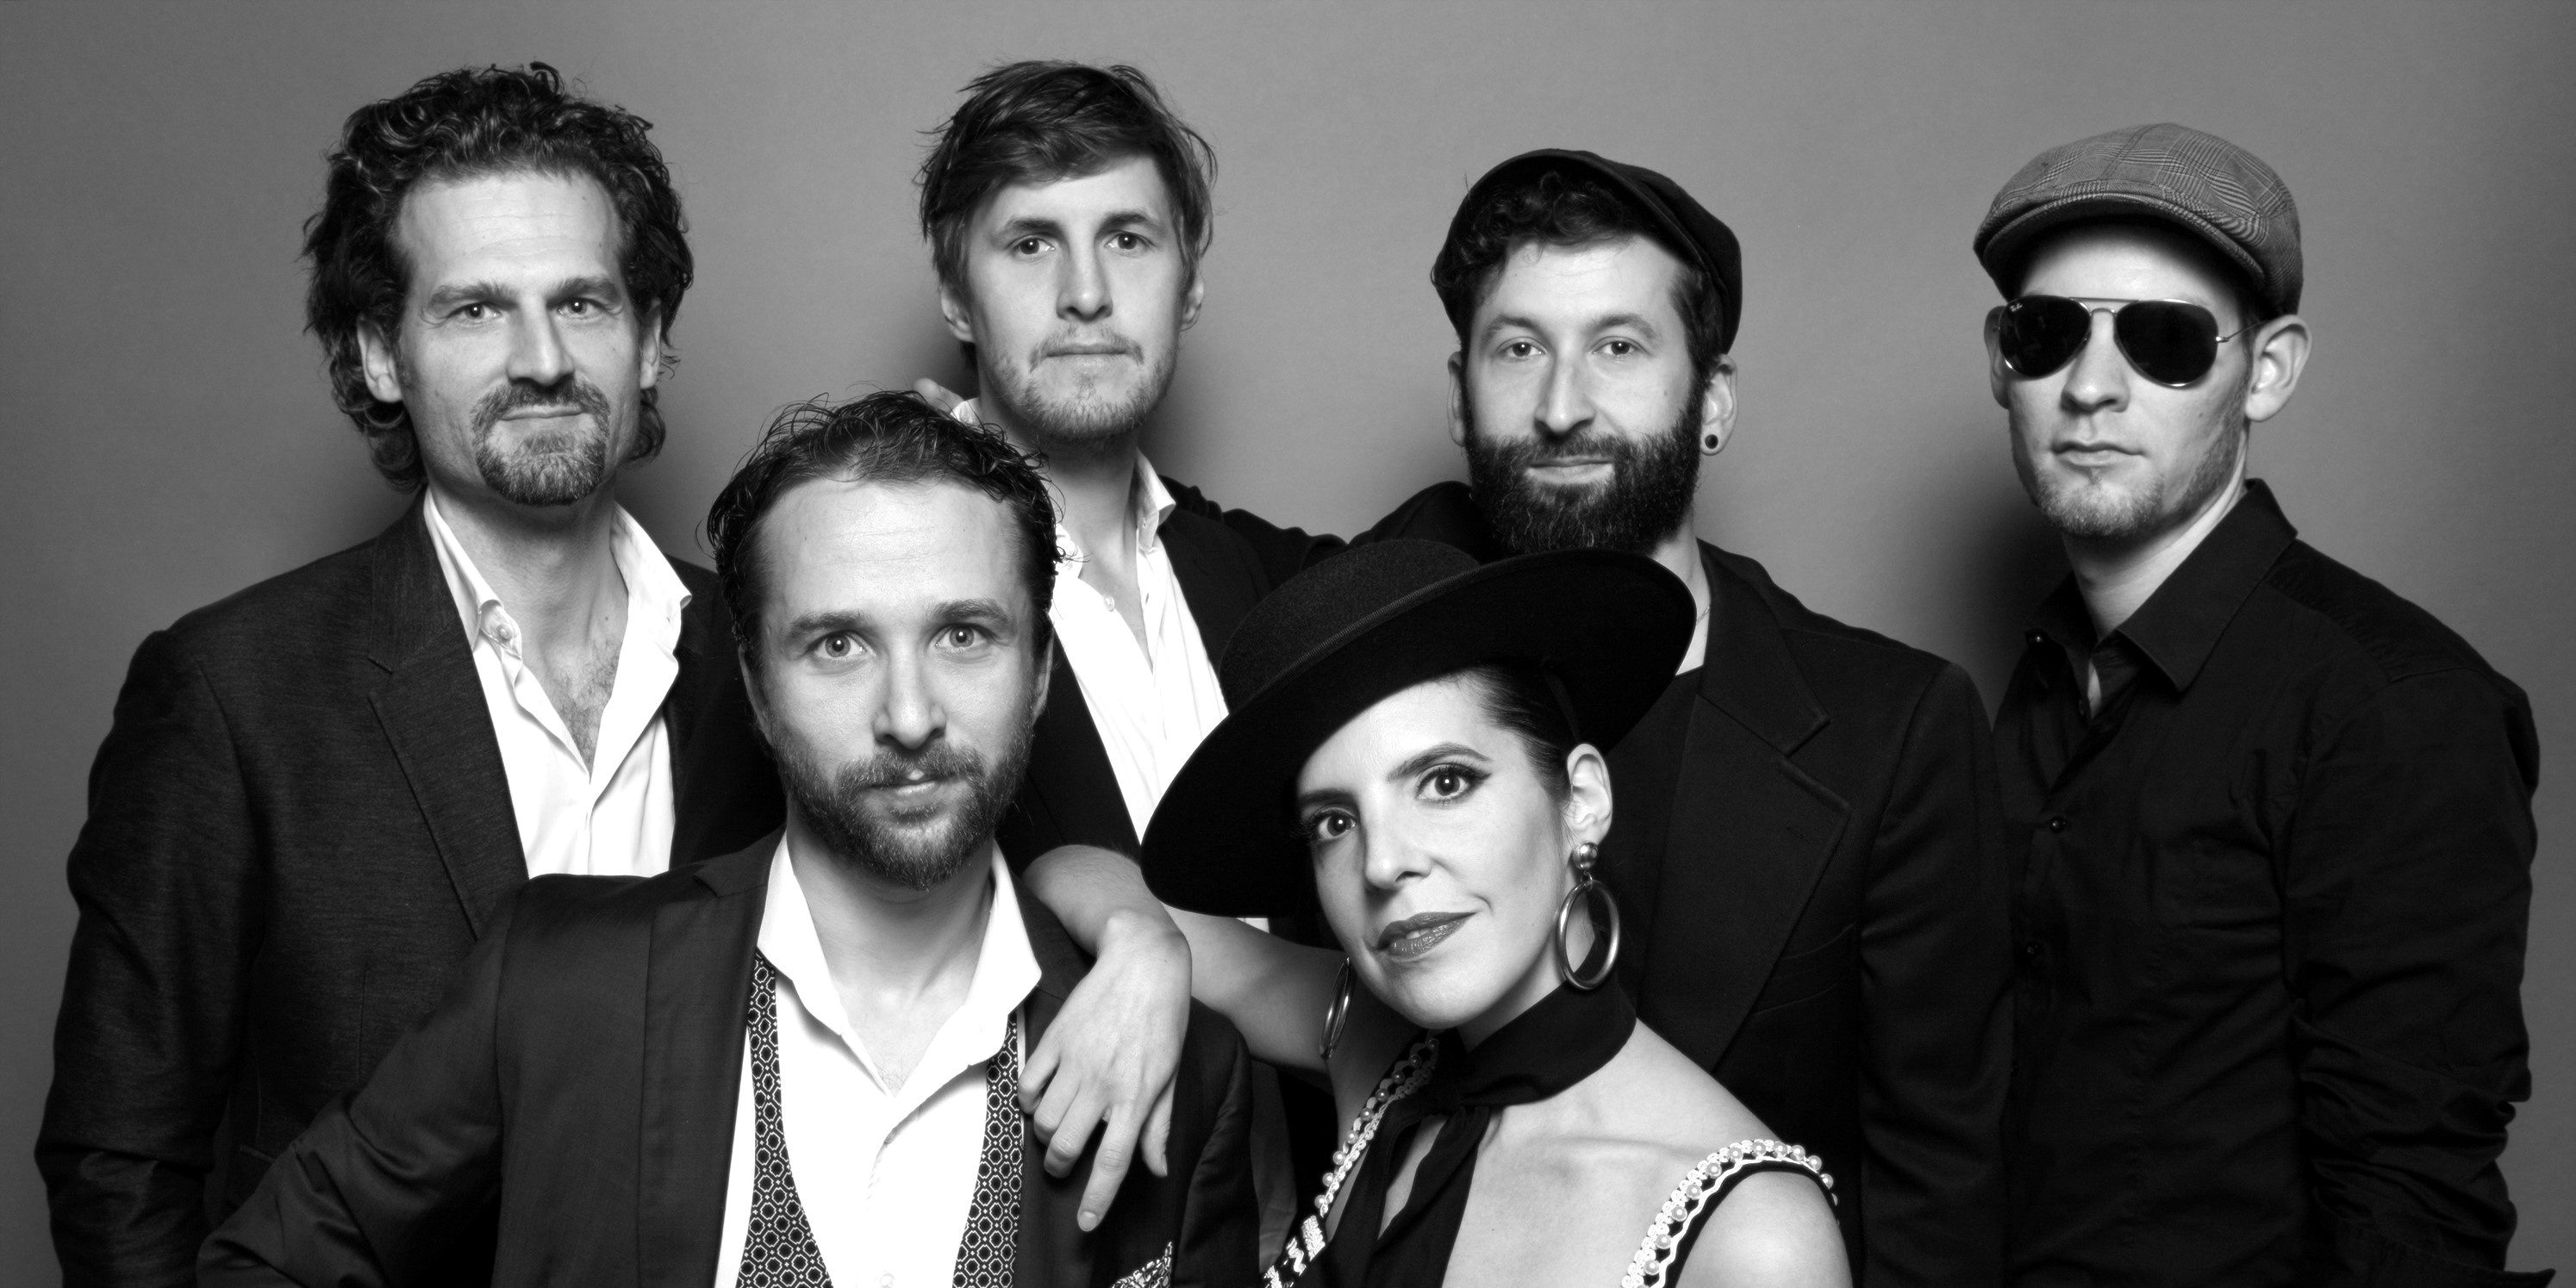 An interview with electro-swing maven Parov Stelar ahead of Sing Jazz 2018